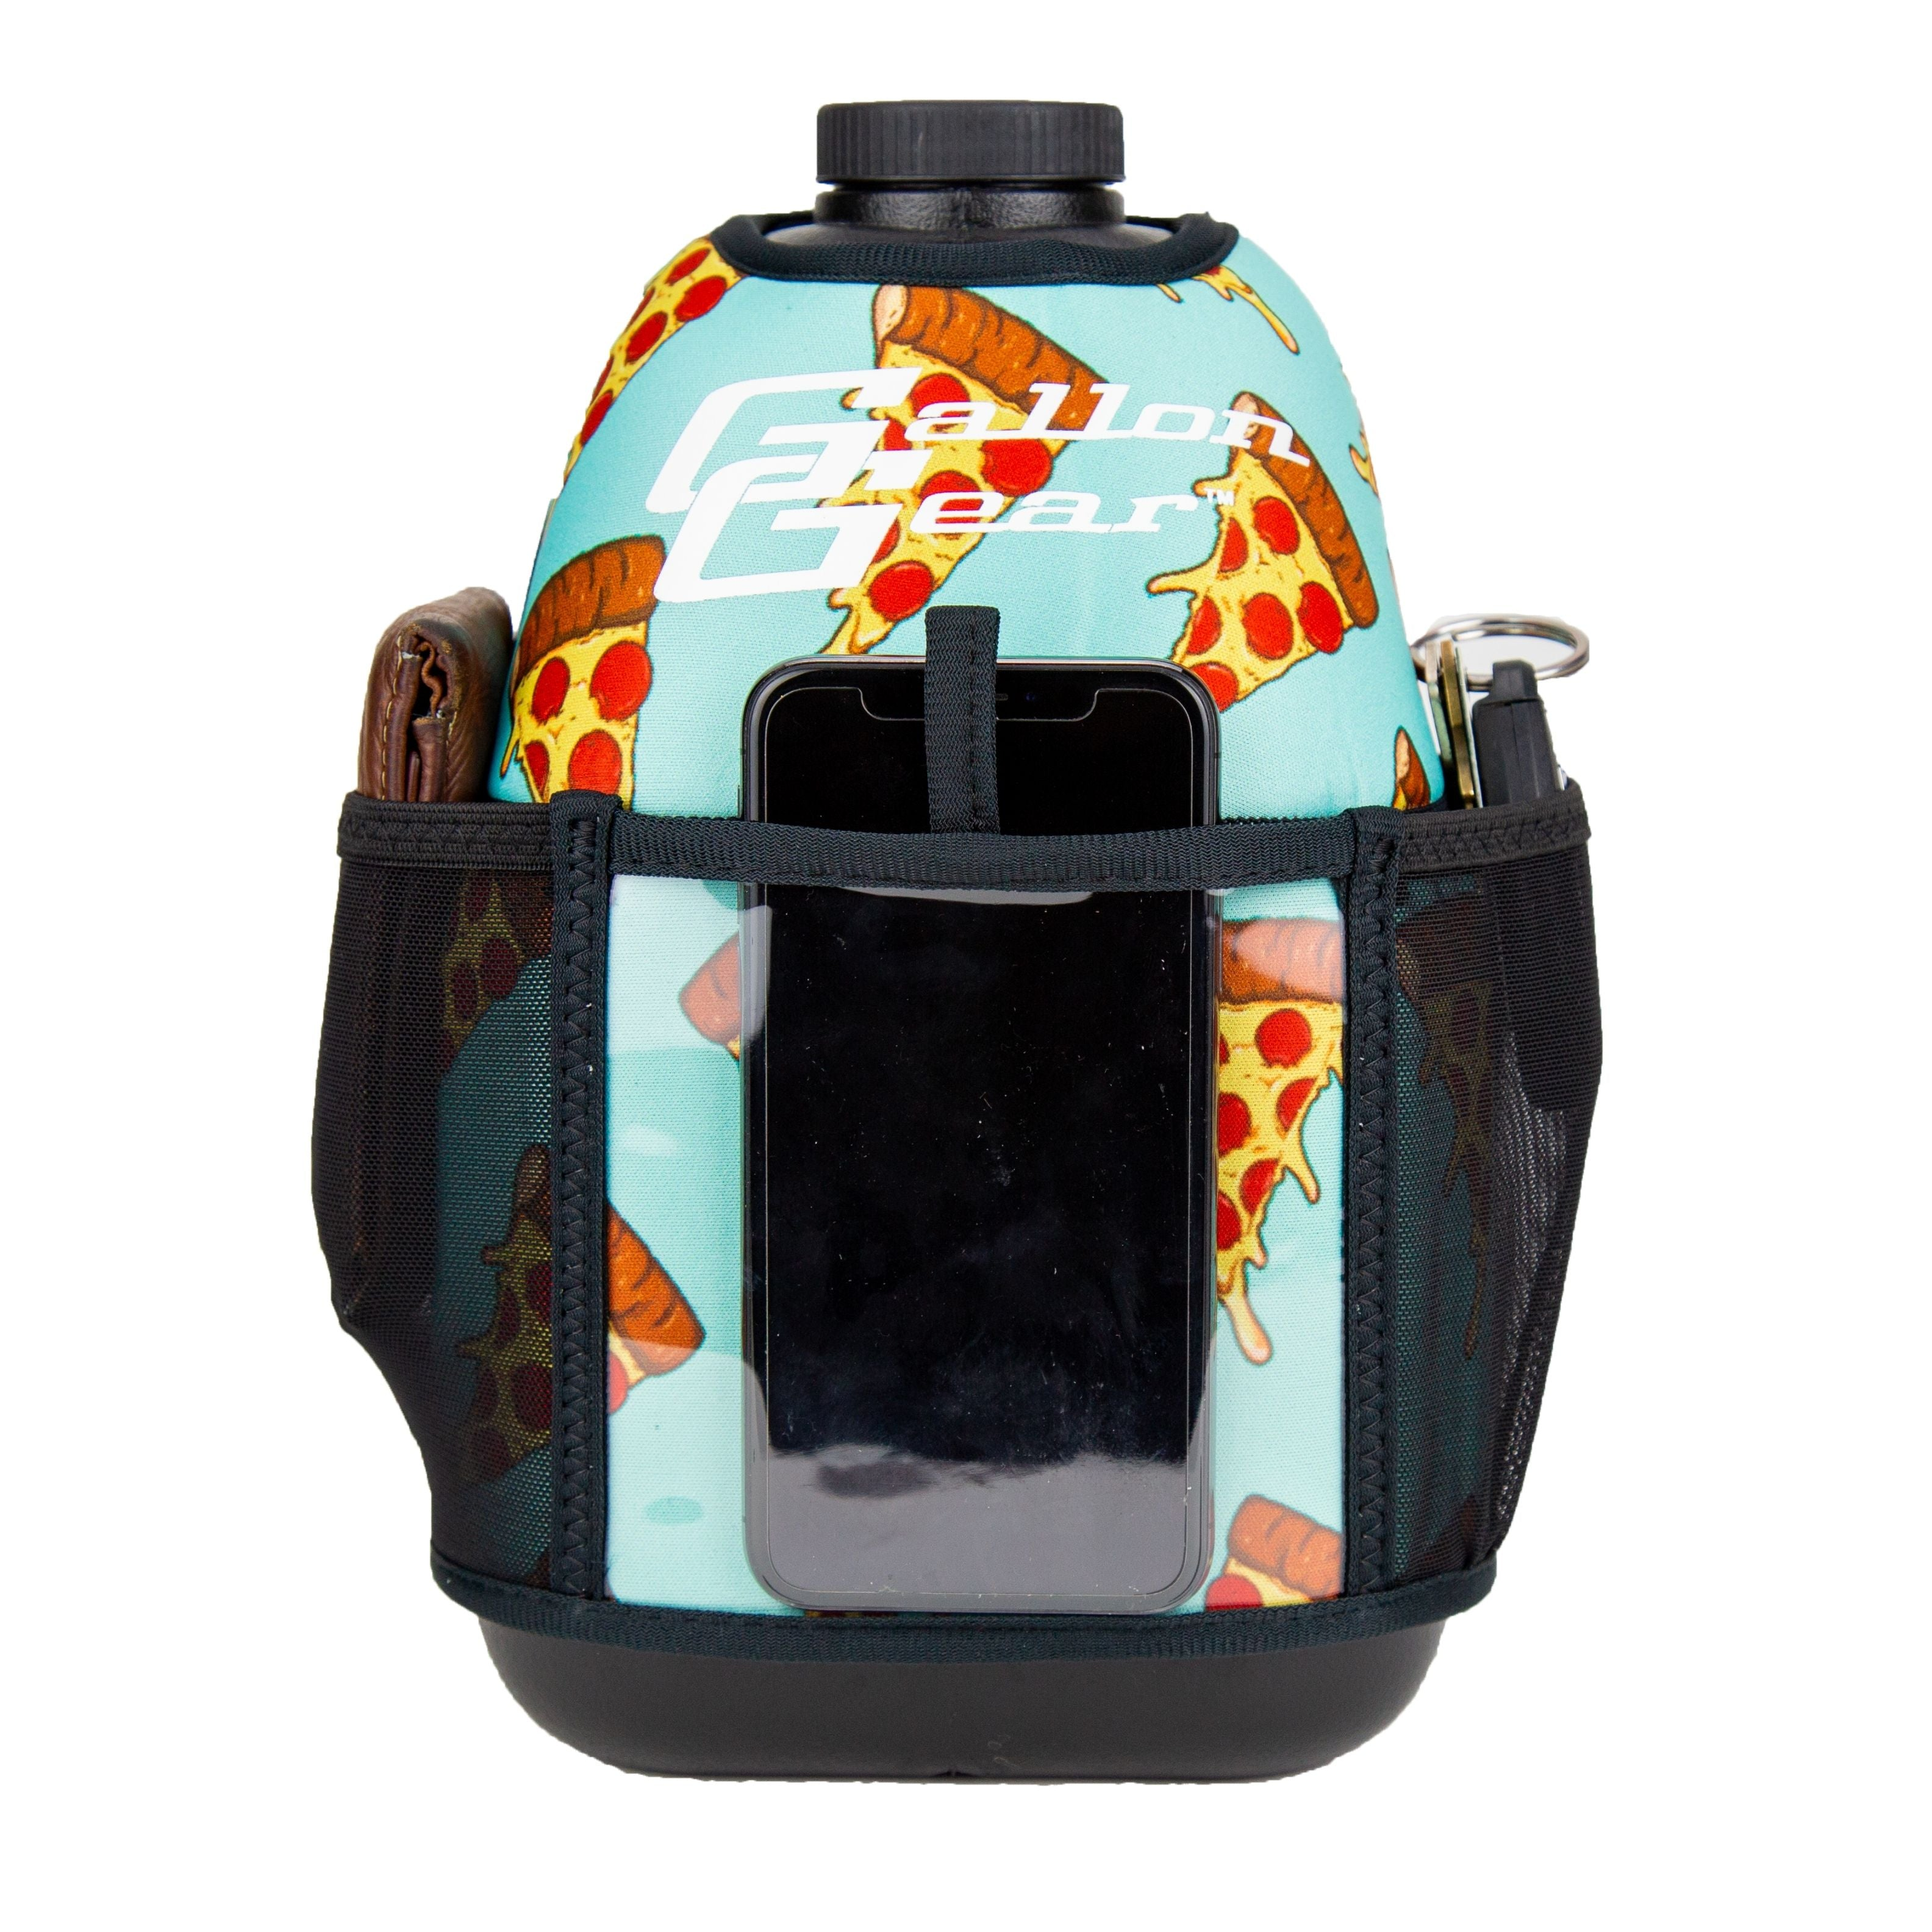 Pizza Double Pocket Gallon Gear Fitness Hydration Cover